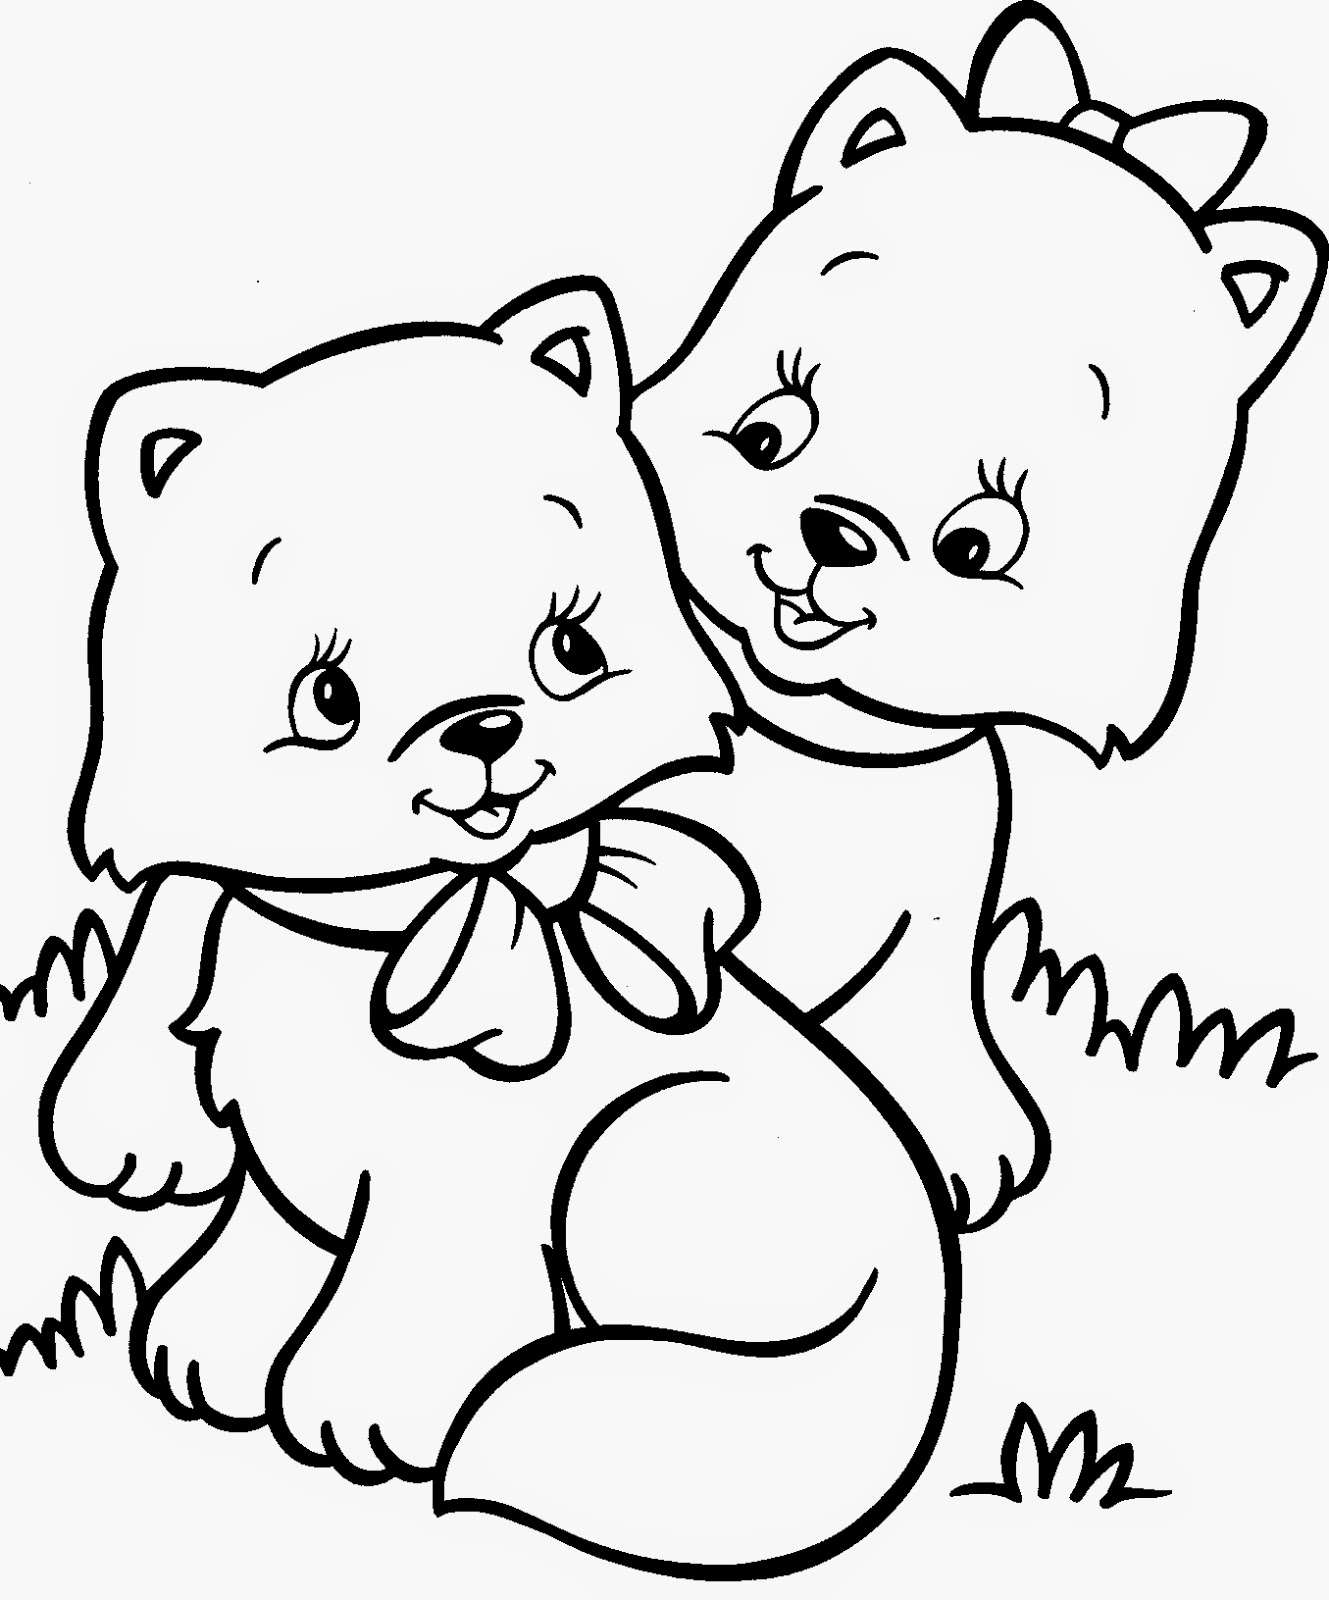 colouring pages of cats navishta sketch sweet cute angle cats of cats pages colouring